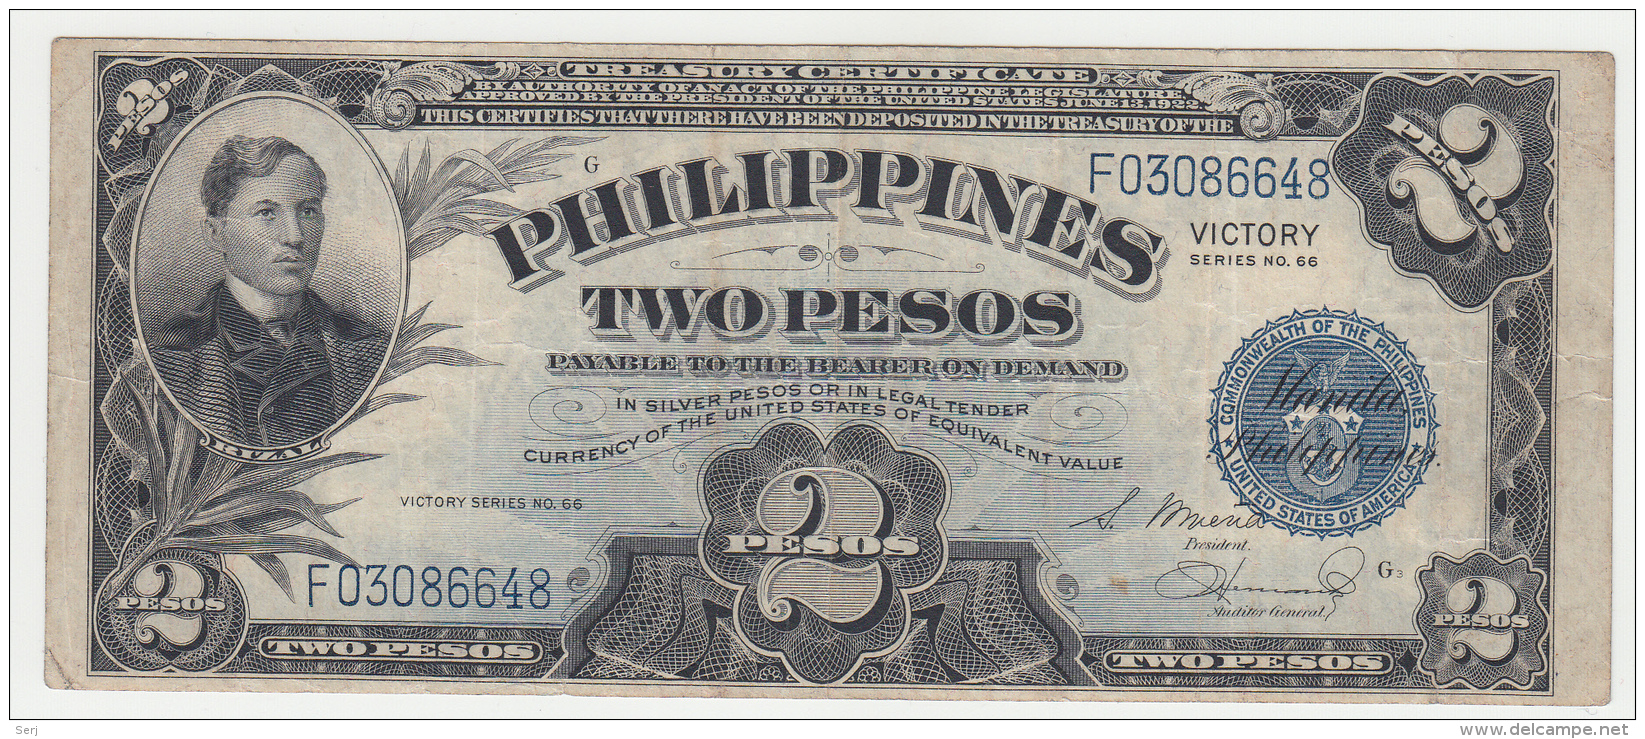 Philippines 2 Peso 1944 VF Victory Over Japan WW 2 - Series G Pick 95 - Philippines